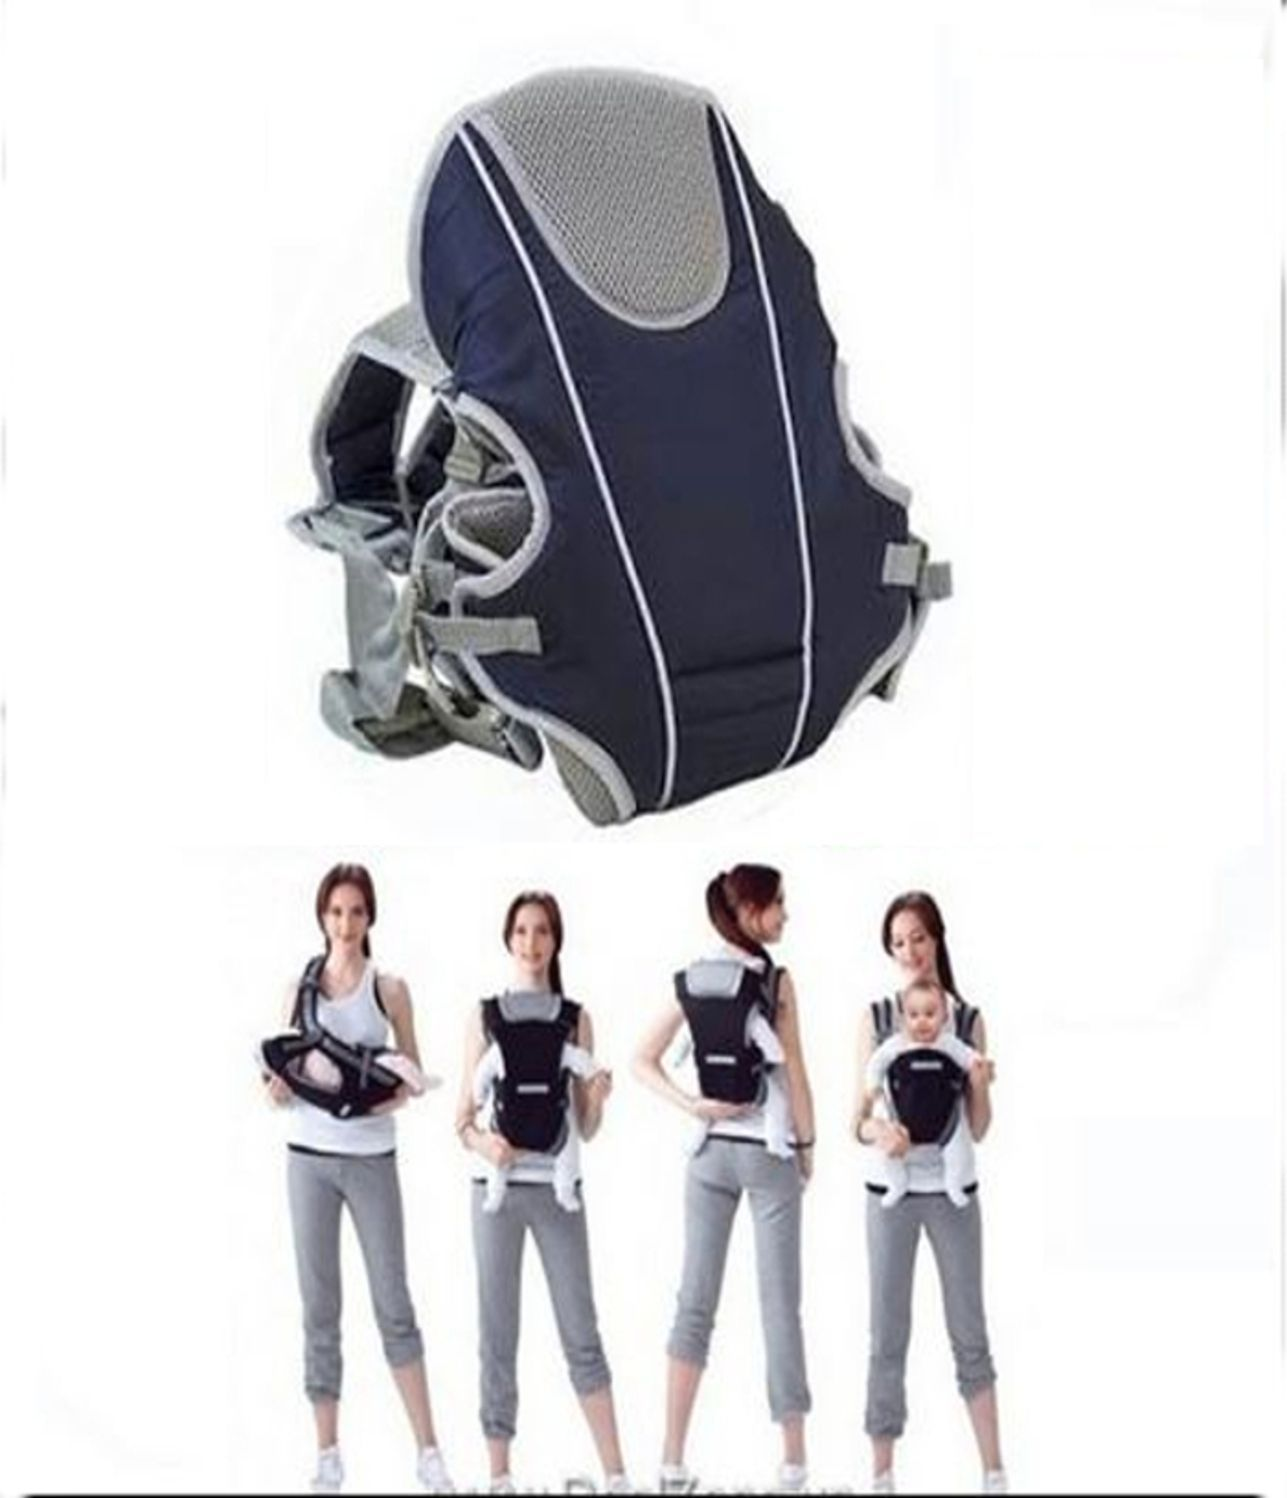 MotherCare Baby Carrier (4 way)